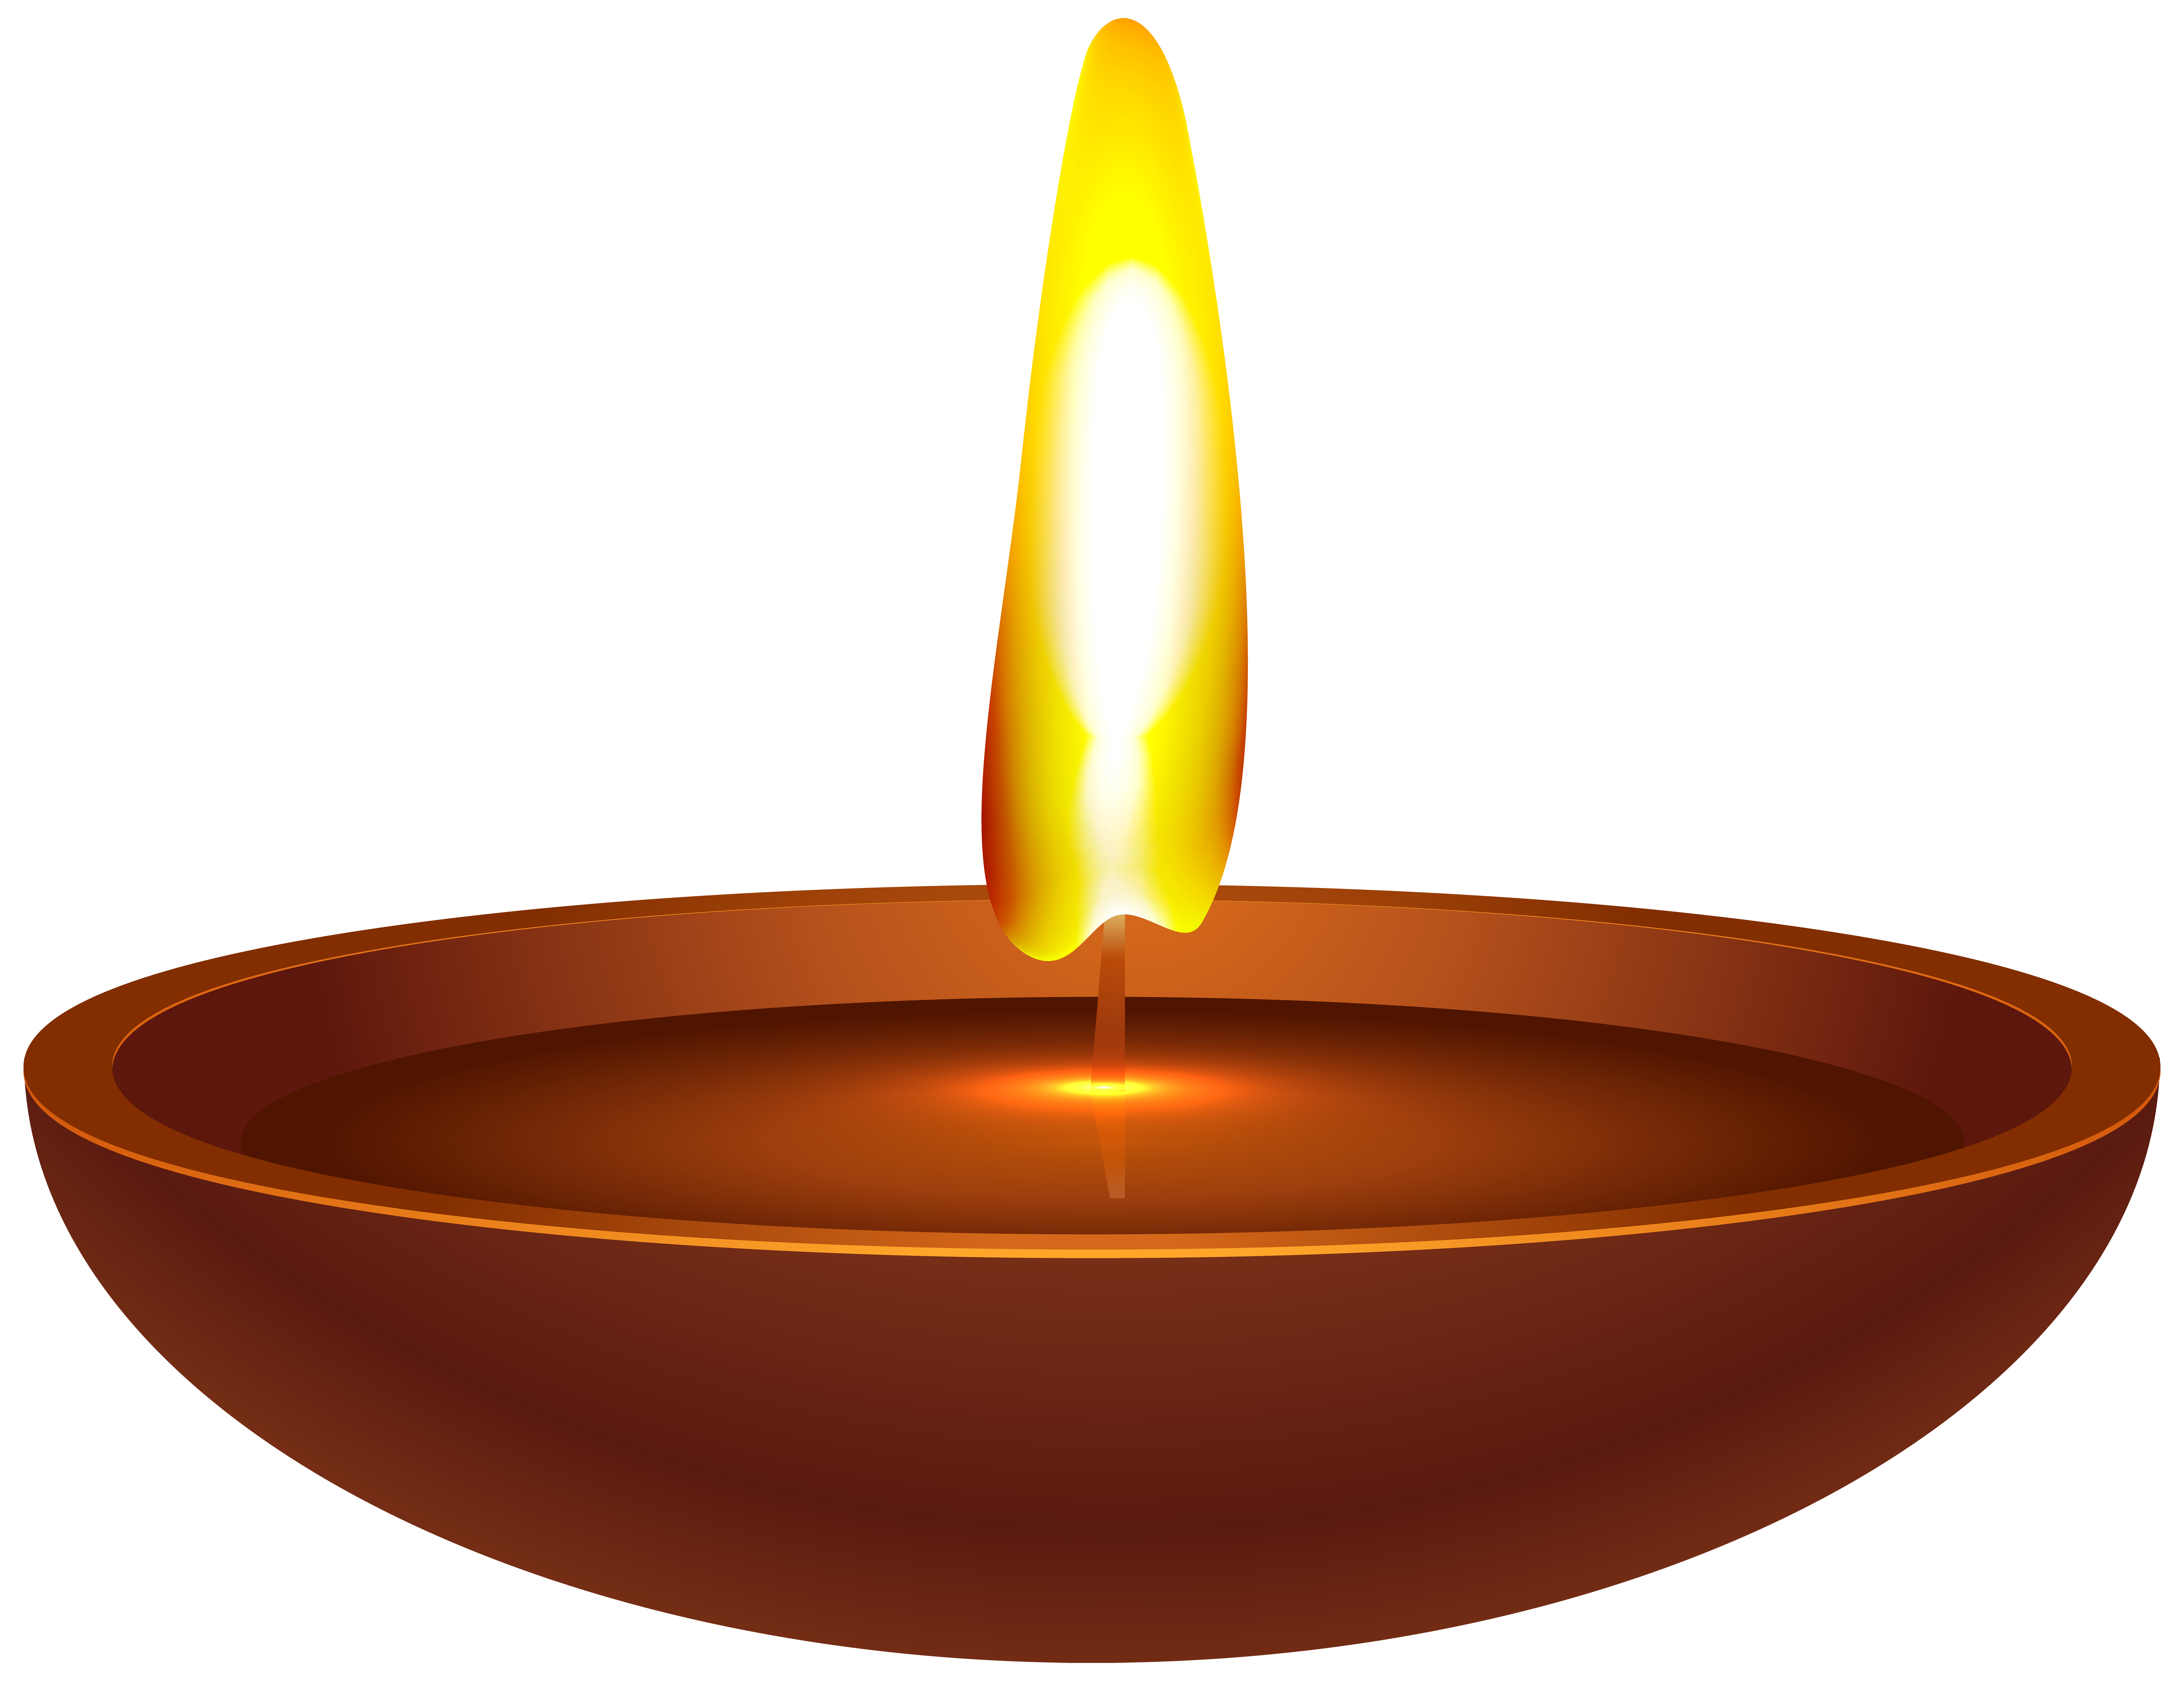 Lamp clipart hindu puja. India candle transparent png